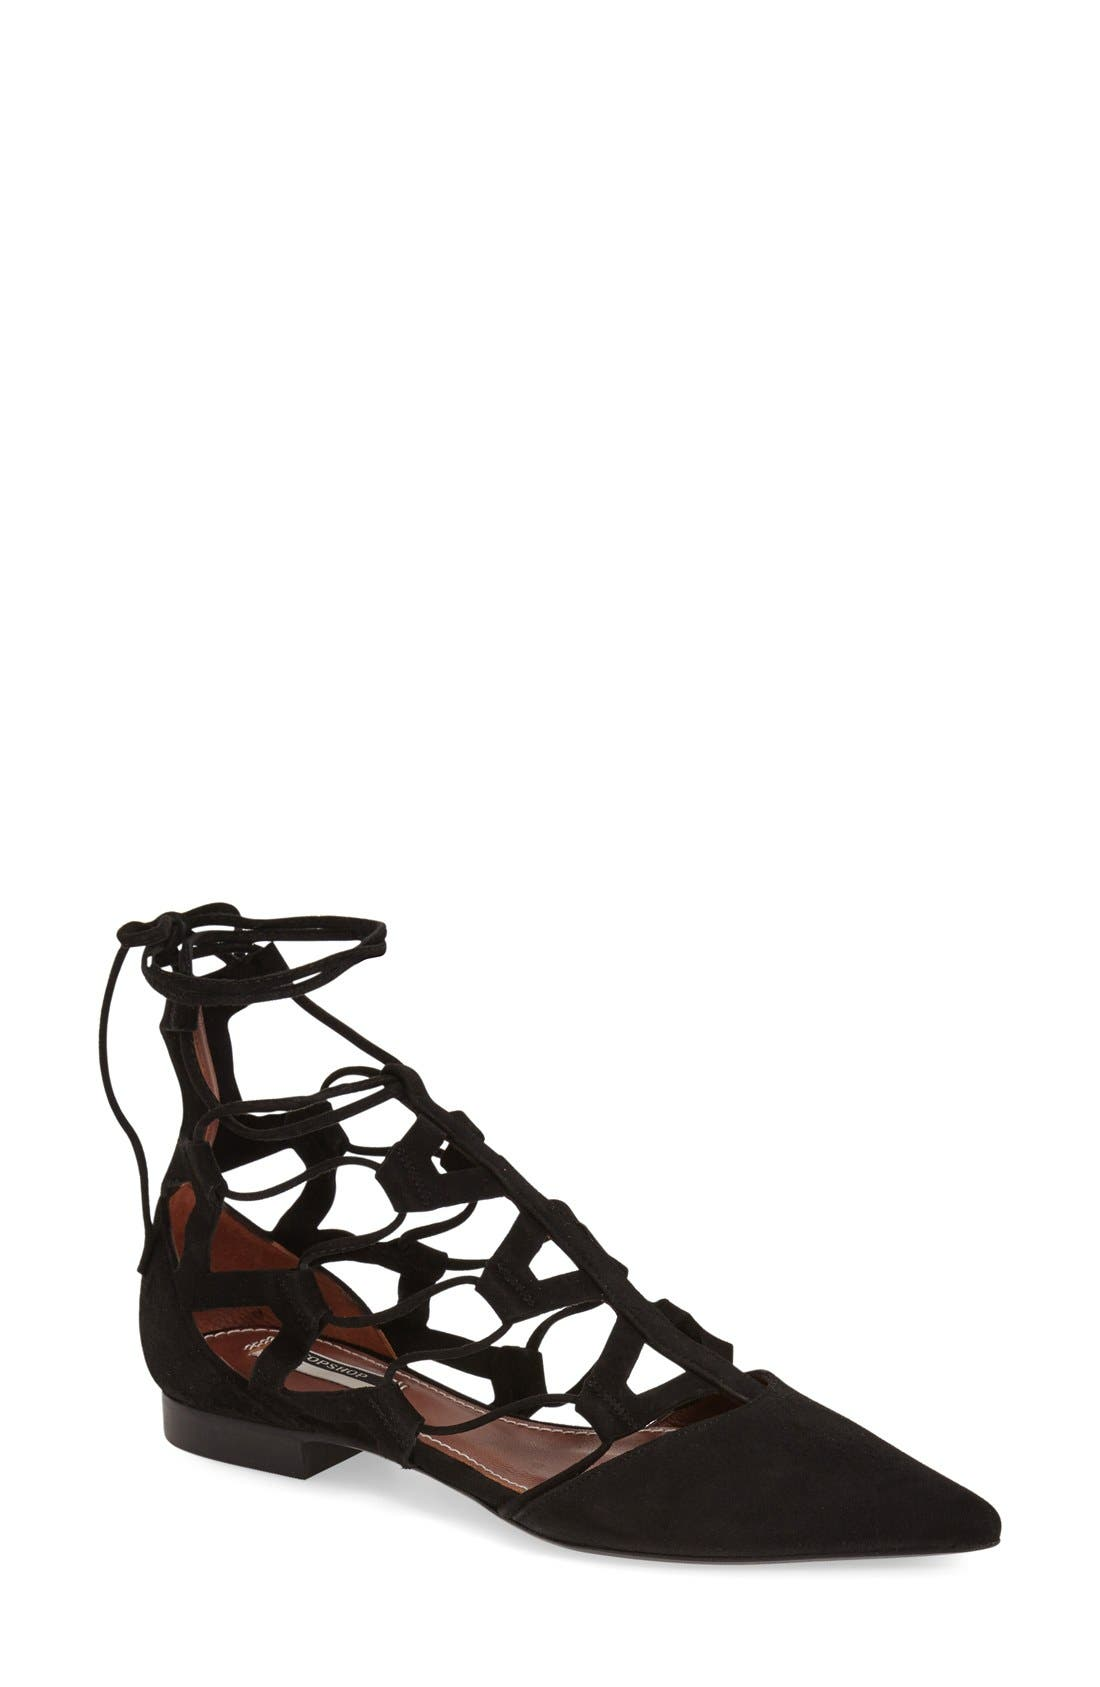 Main Image - Topshop 'Posy' Pointy Toe Ghillie Flat (Women)